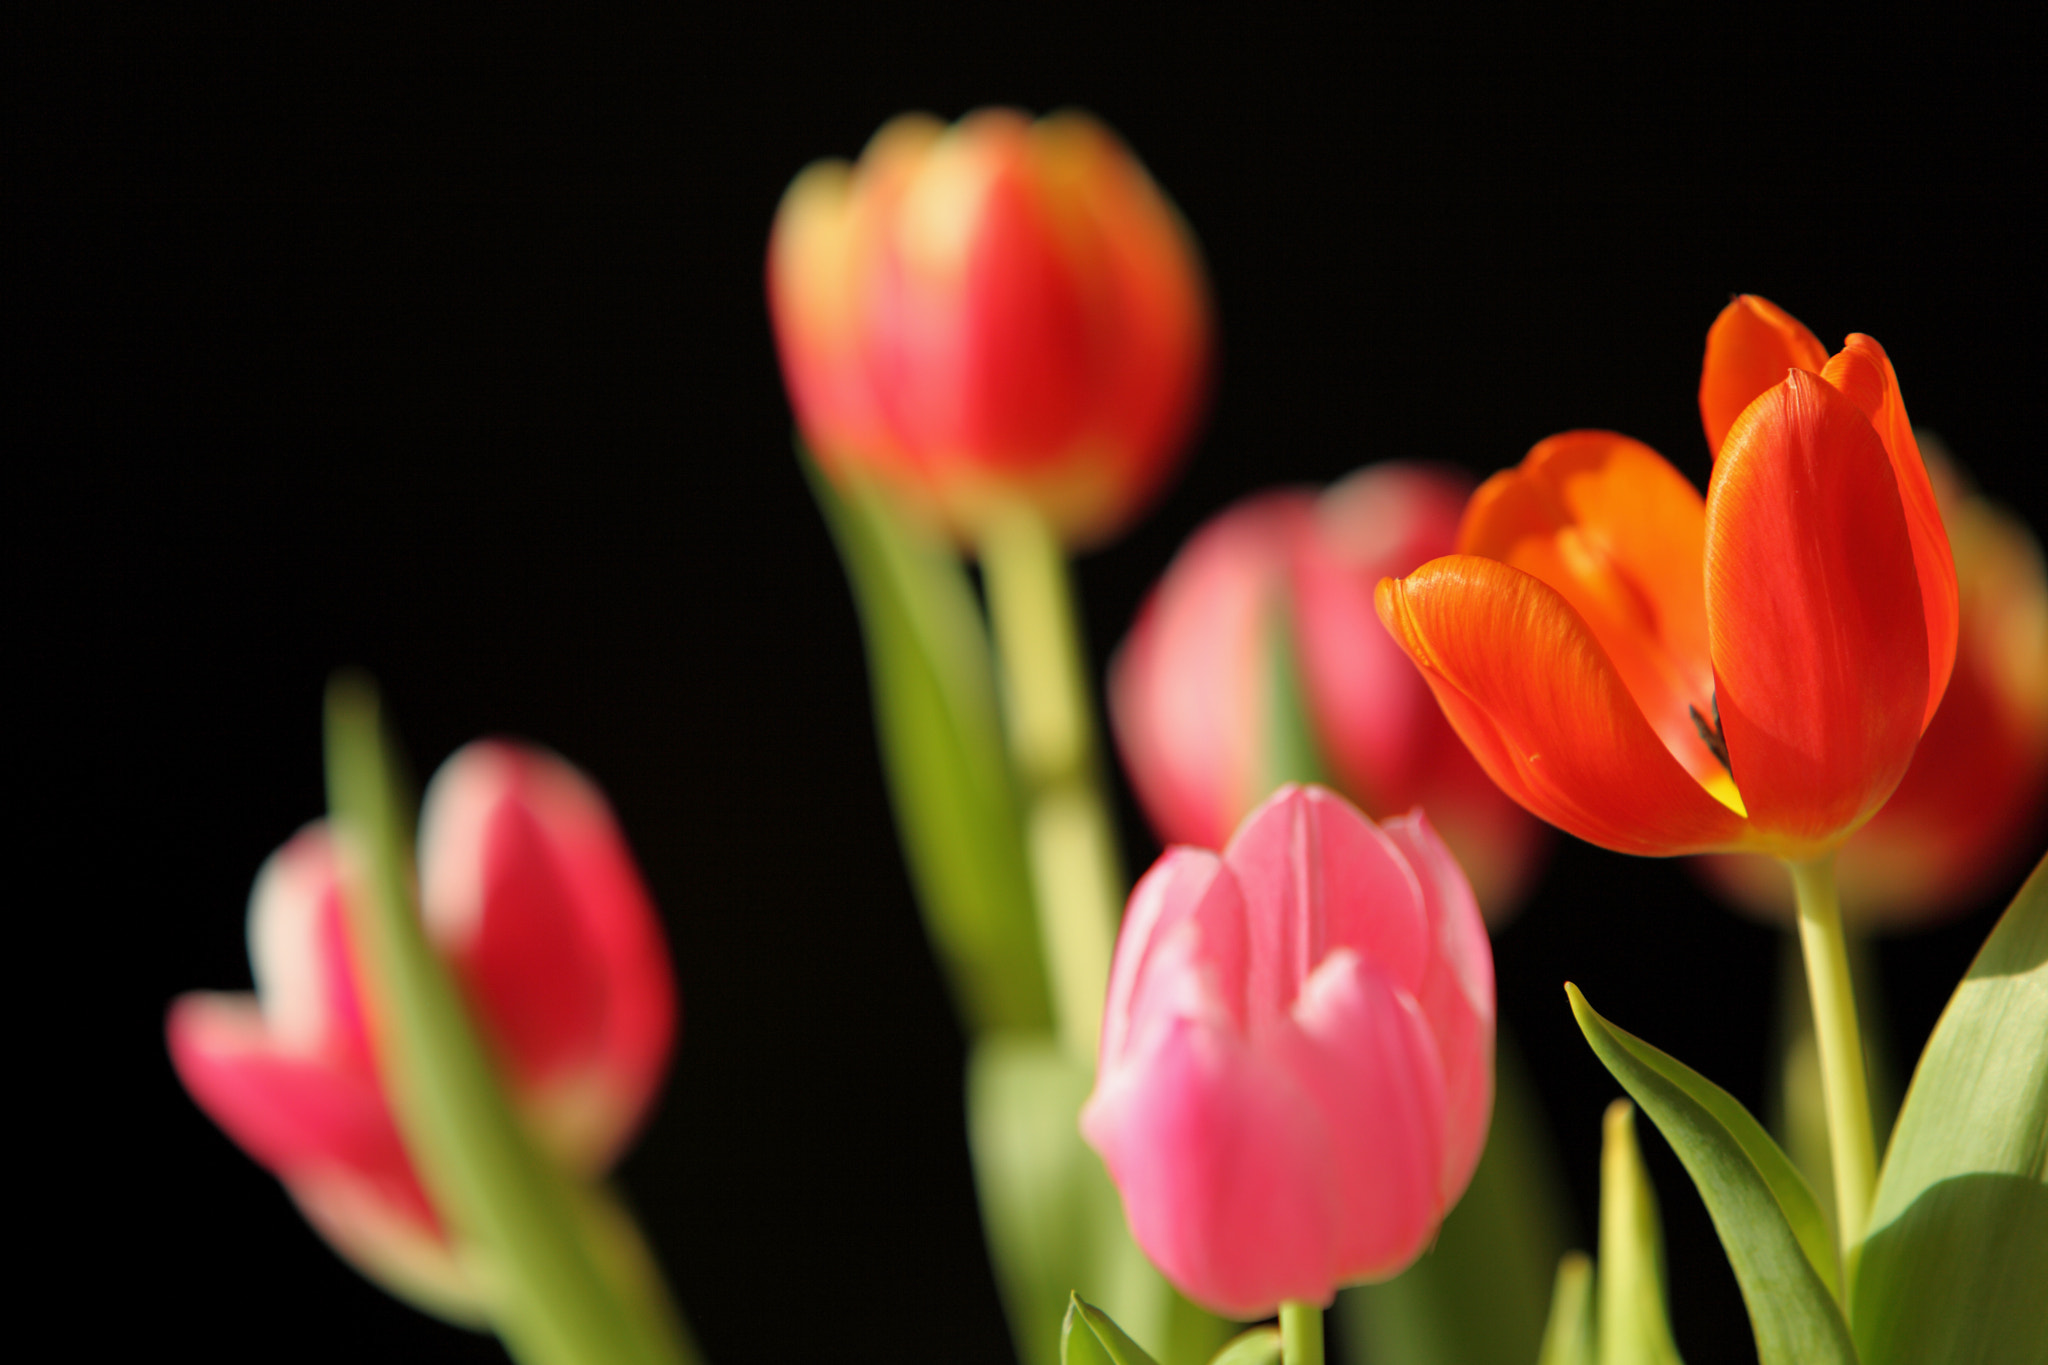 Photograph Tulips by Mathijs van den Bosch on 500px